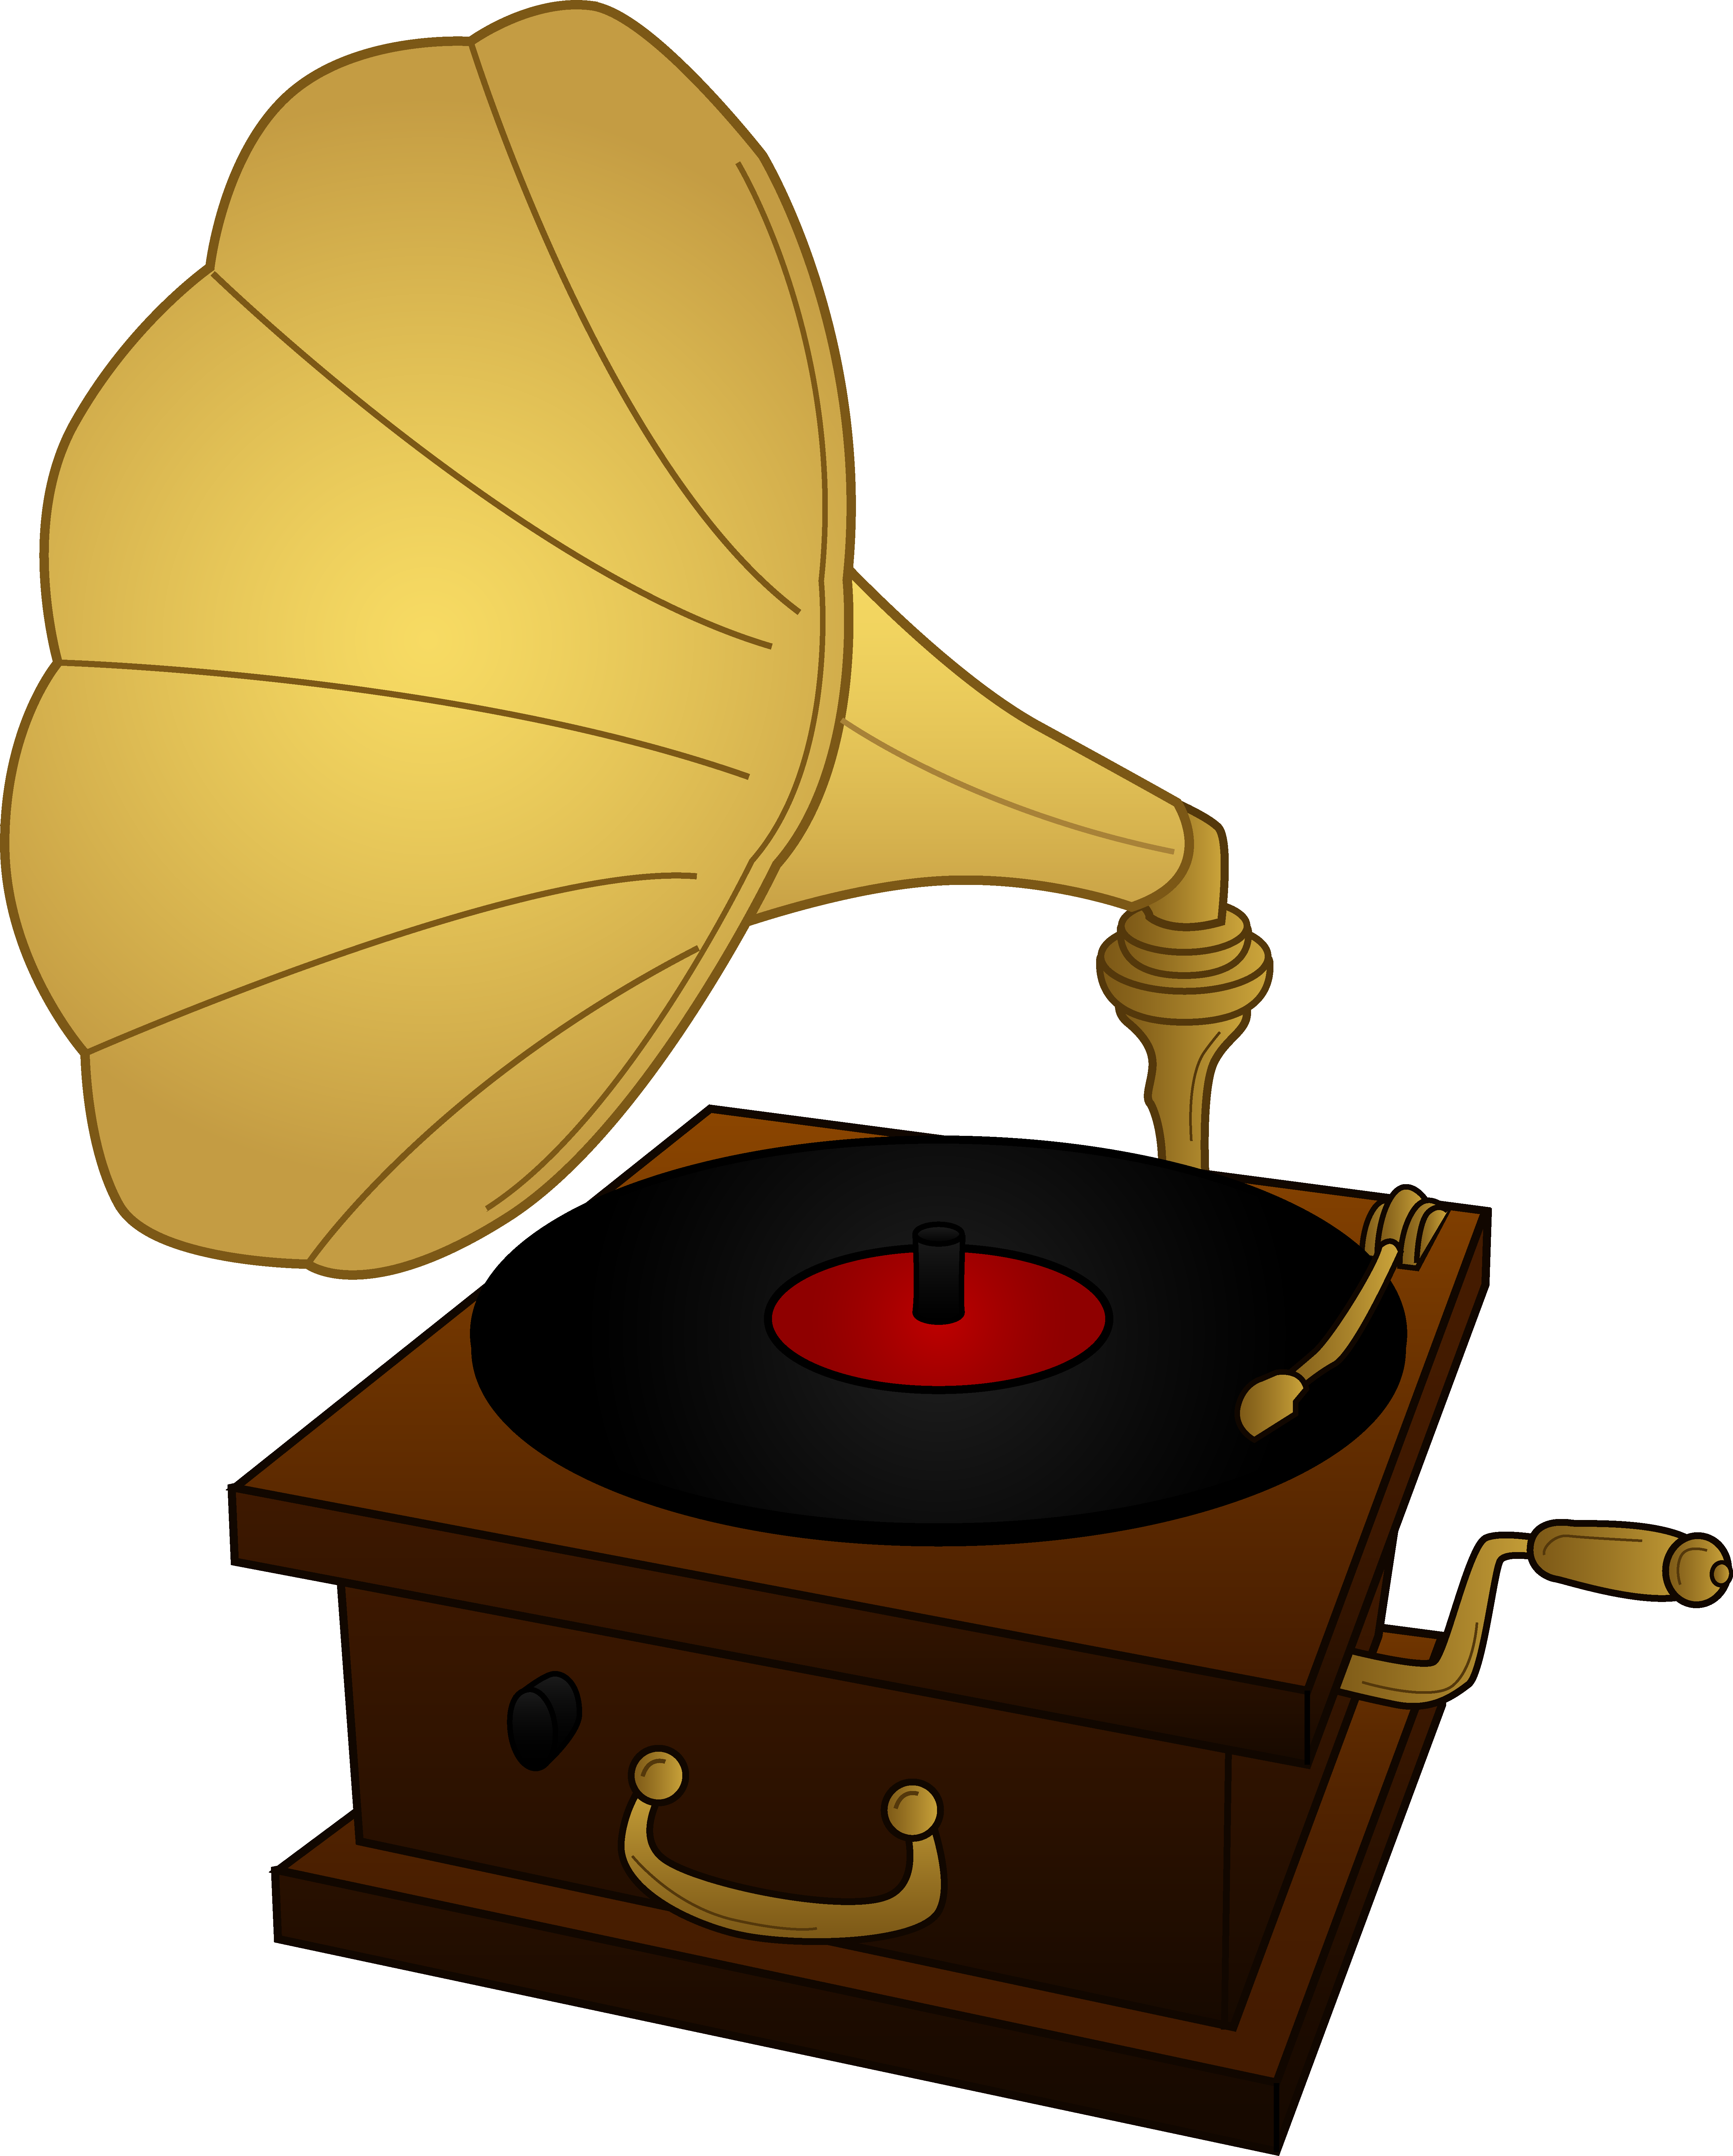 clipart black and white stock Old record player drawing. 50s clipart golden oldies